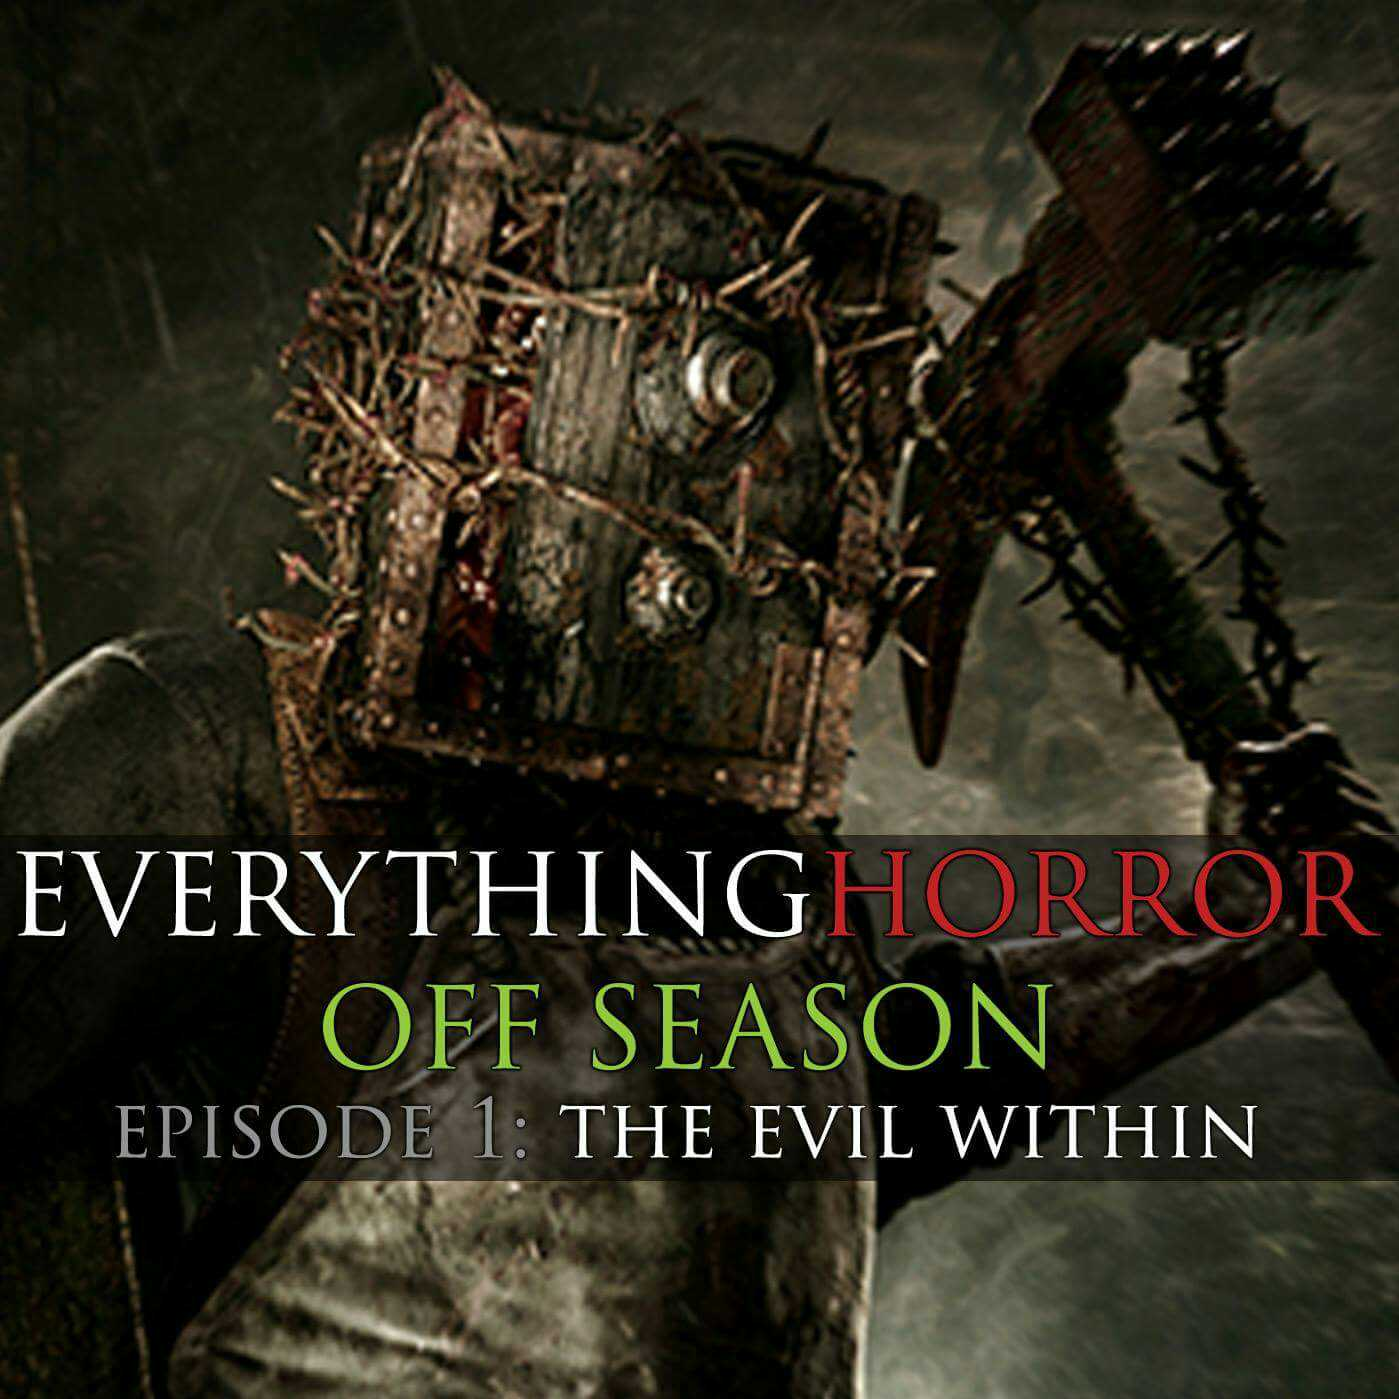 Off Season: Episode 1 - The Evil Within